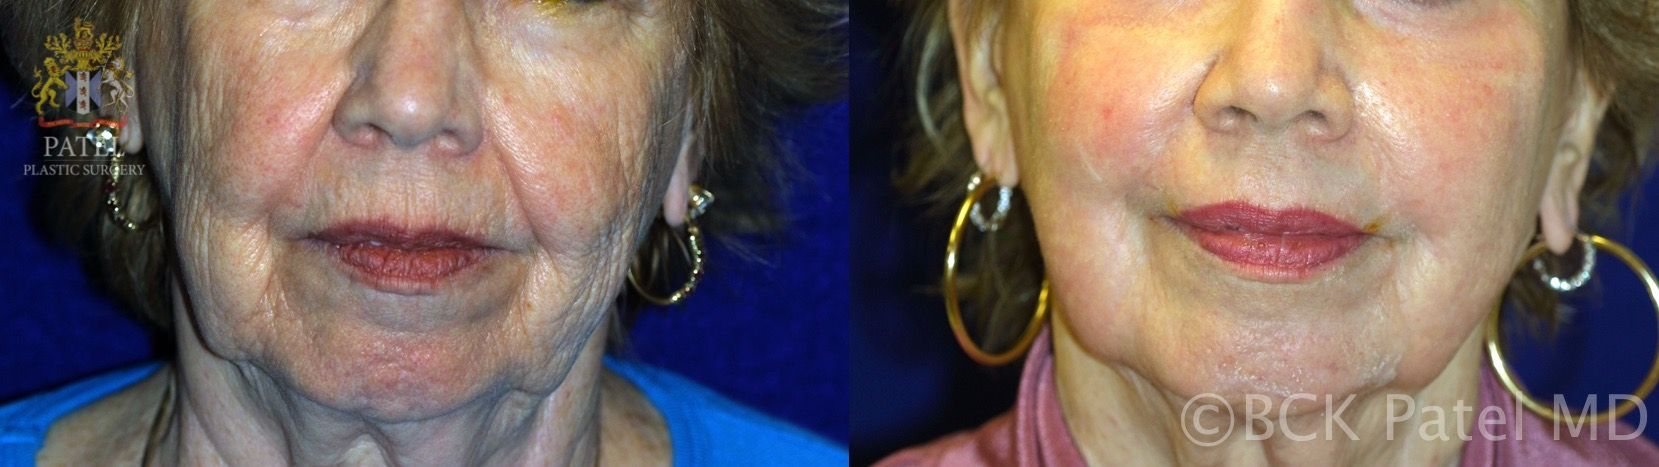 englishsurgeon.com. Photos show results of fractionated CO2 laser on the face. BCK Patel MD